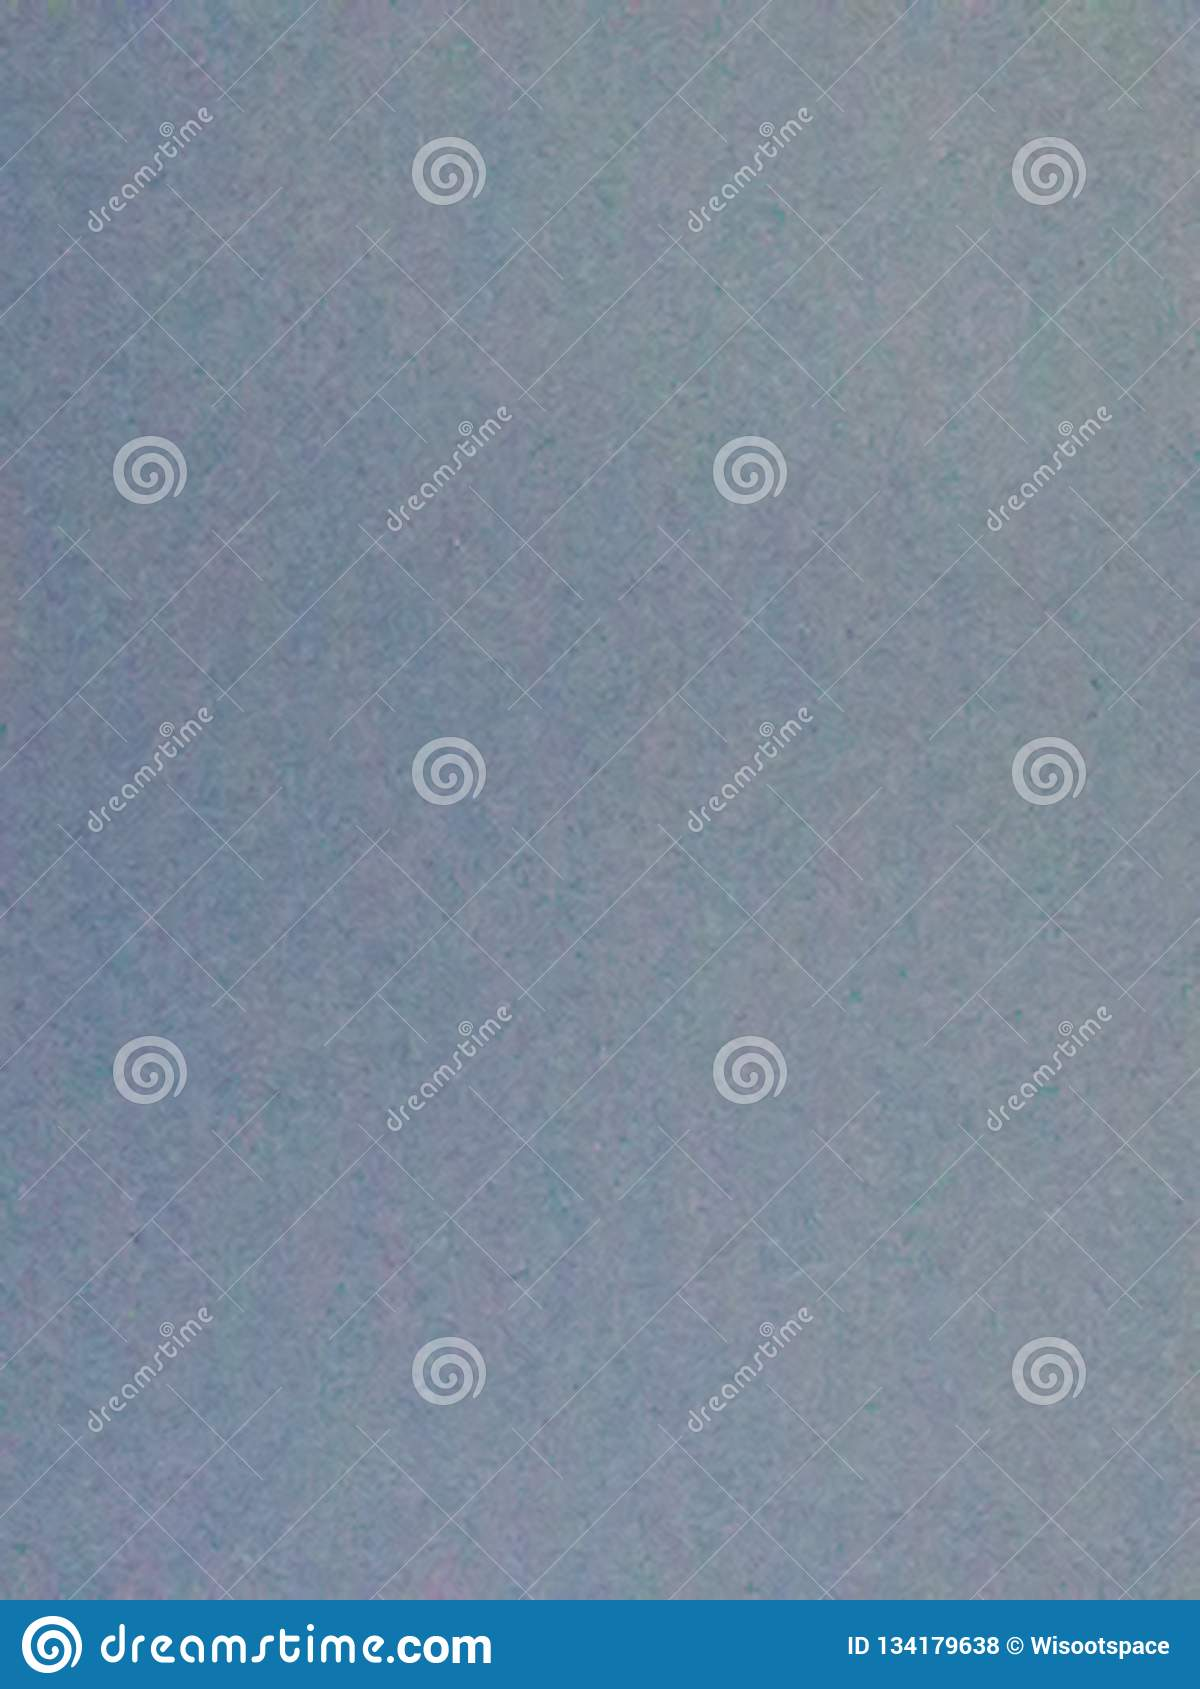 Background with noise. gradient surface image. Overlay, Vintage retro texture backdrop. Grunge blured snapshot.